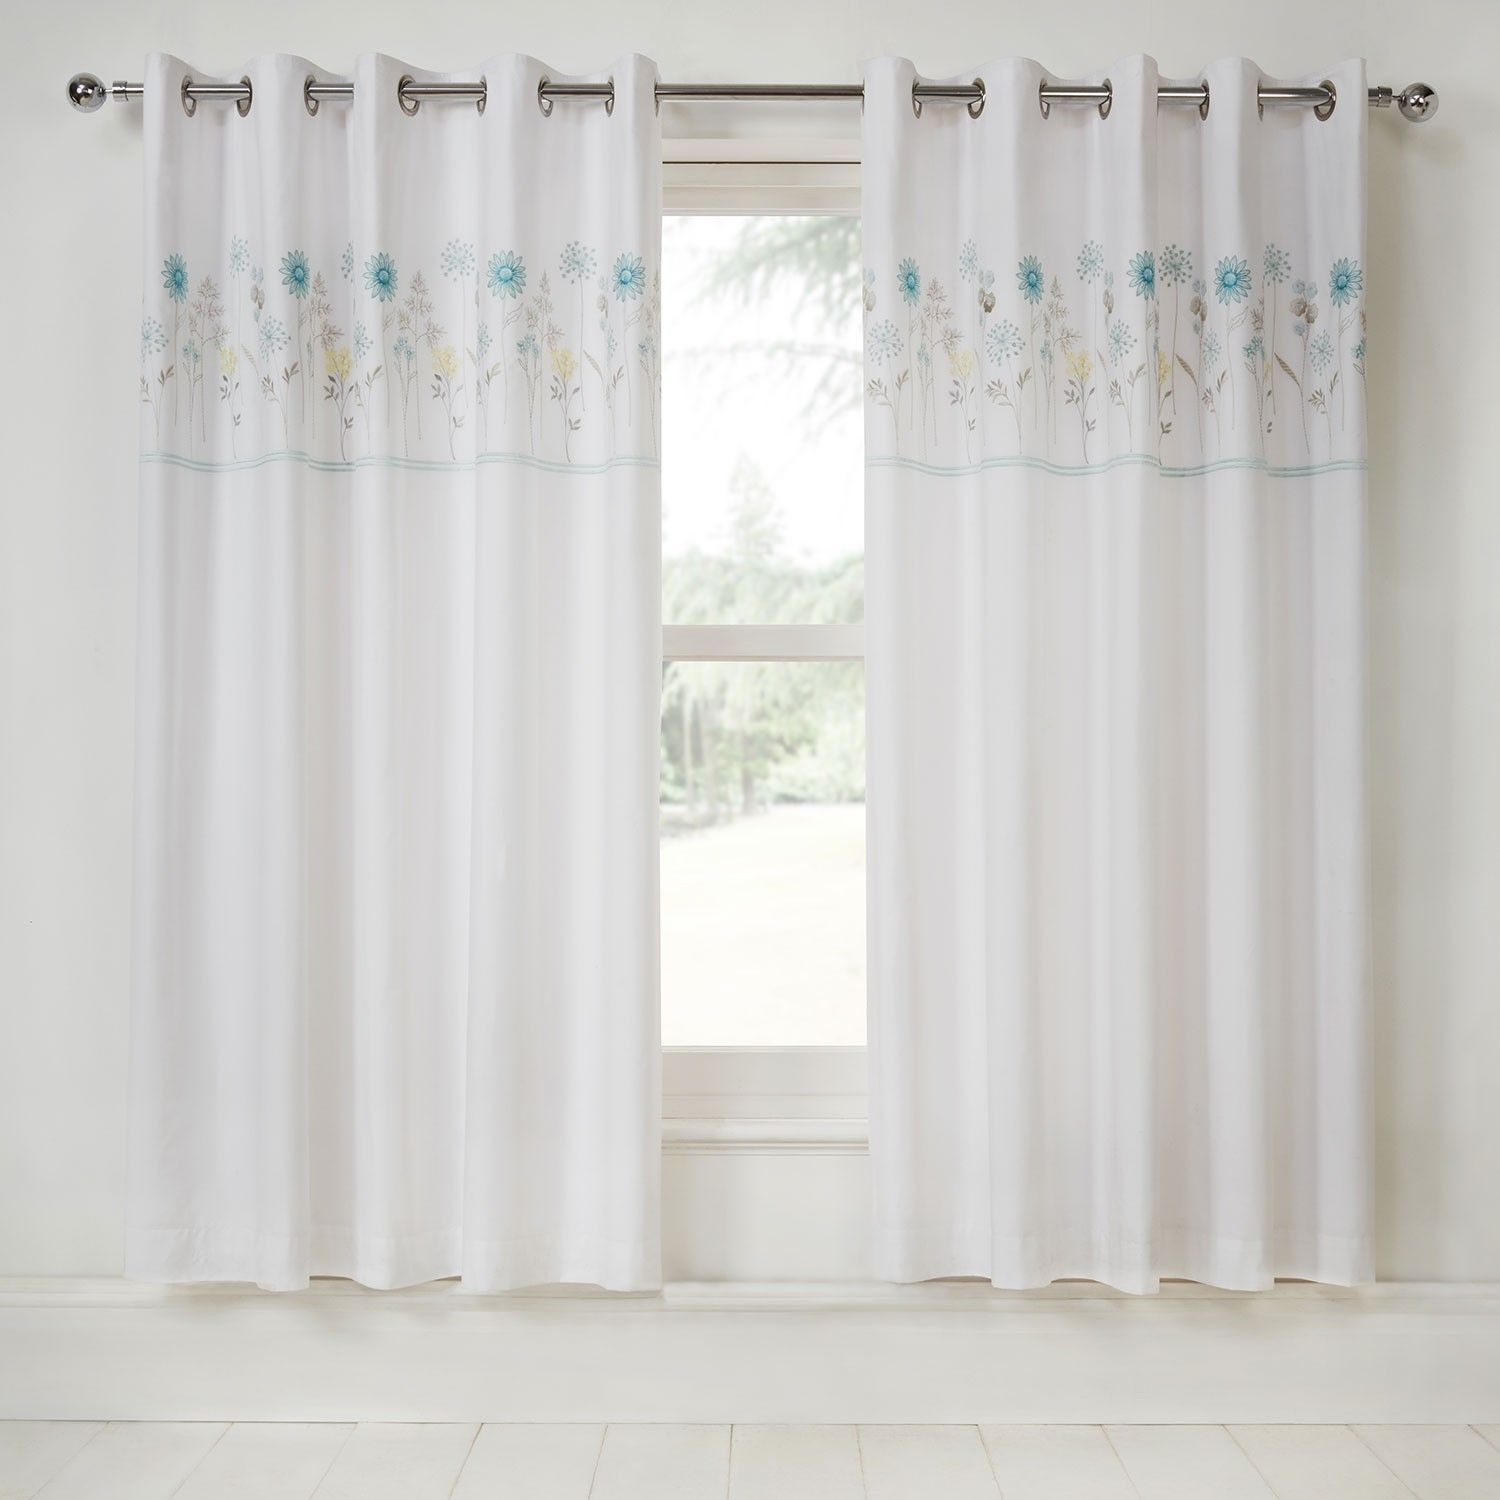 Kitchen Curtains White Eyelet  Httplatulufeed Entrancing White Kitchen Curtains Design Ideas